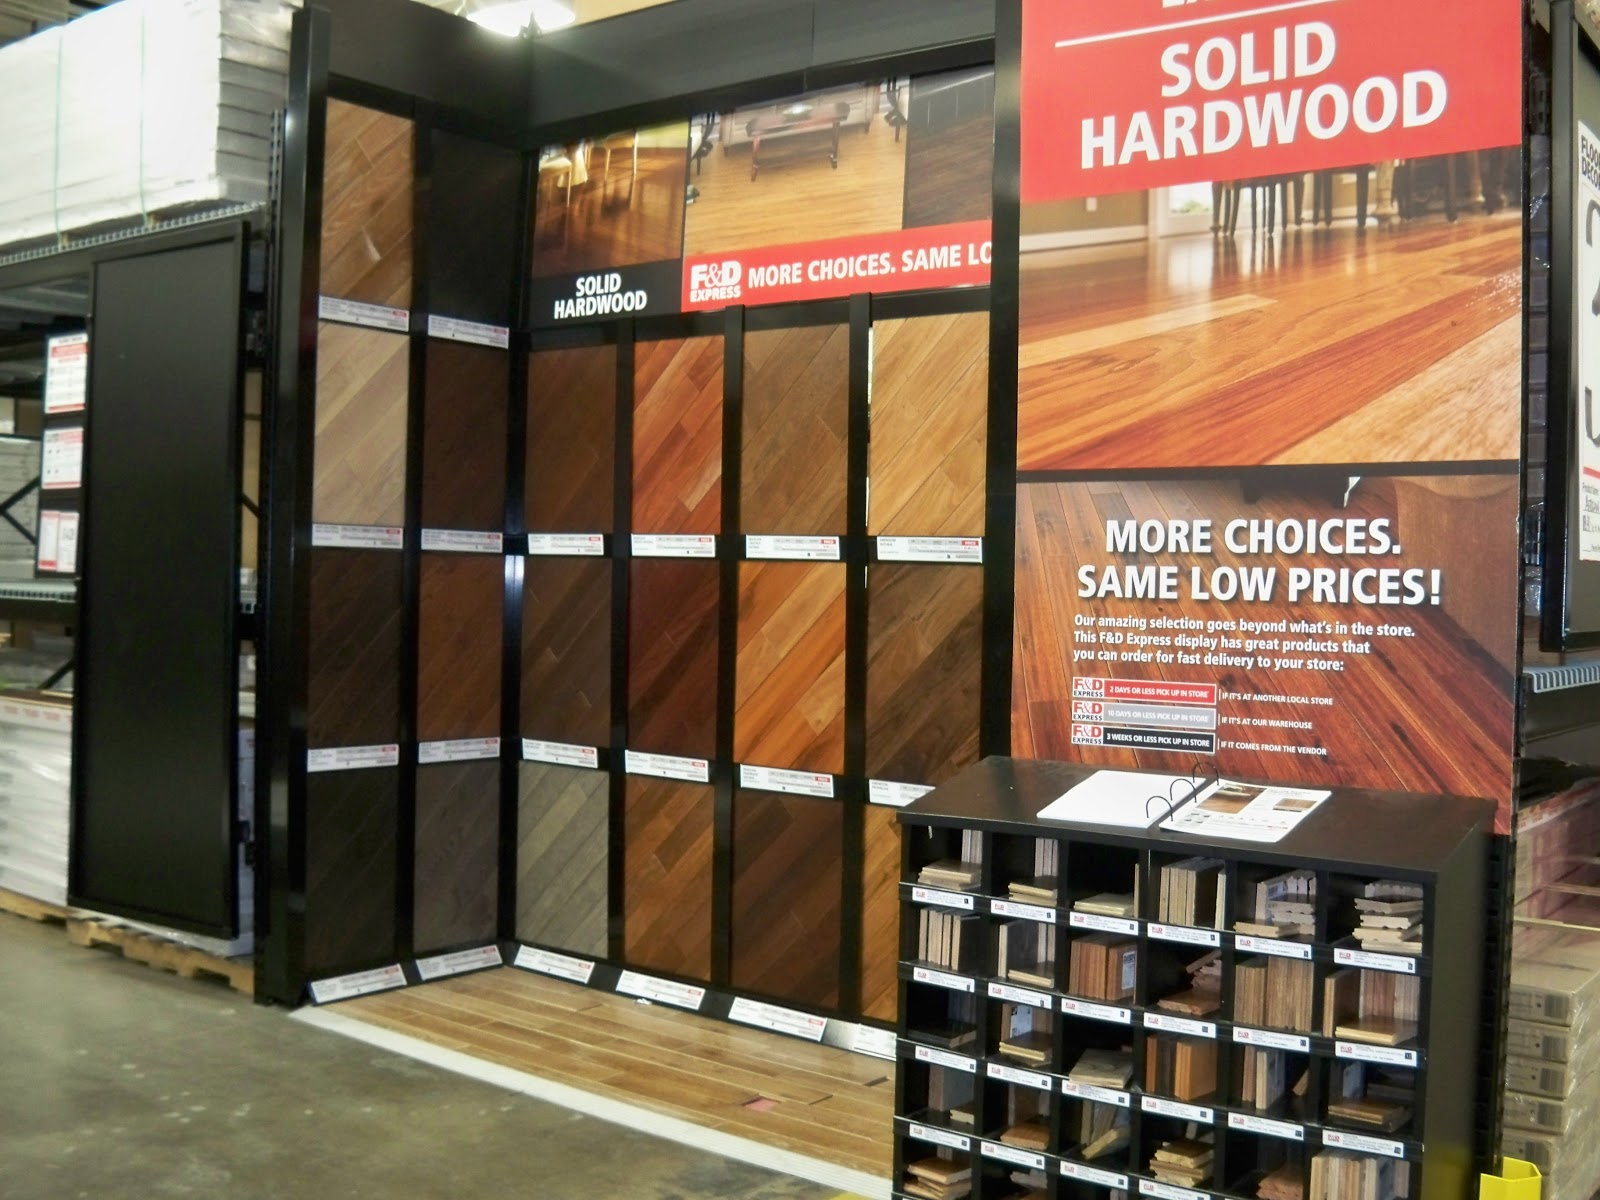 Floor and decor glendale - If You Are Doing Any Kind Of Remodel You Can Find Anything You Need At Floor Decor They Even Have Every Tool You Need To Do The Job